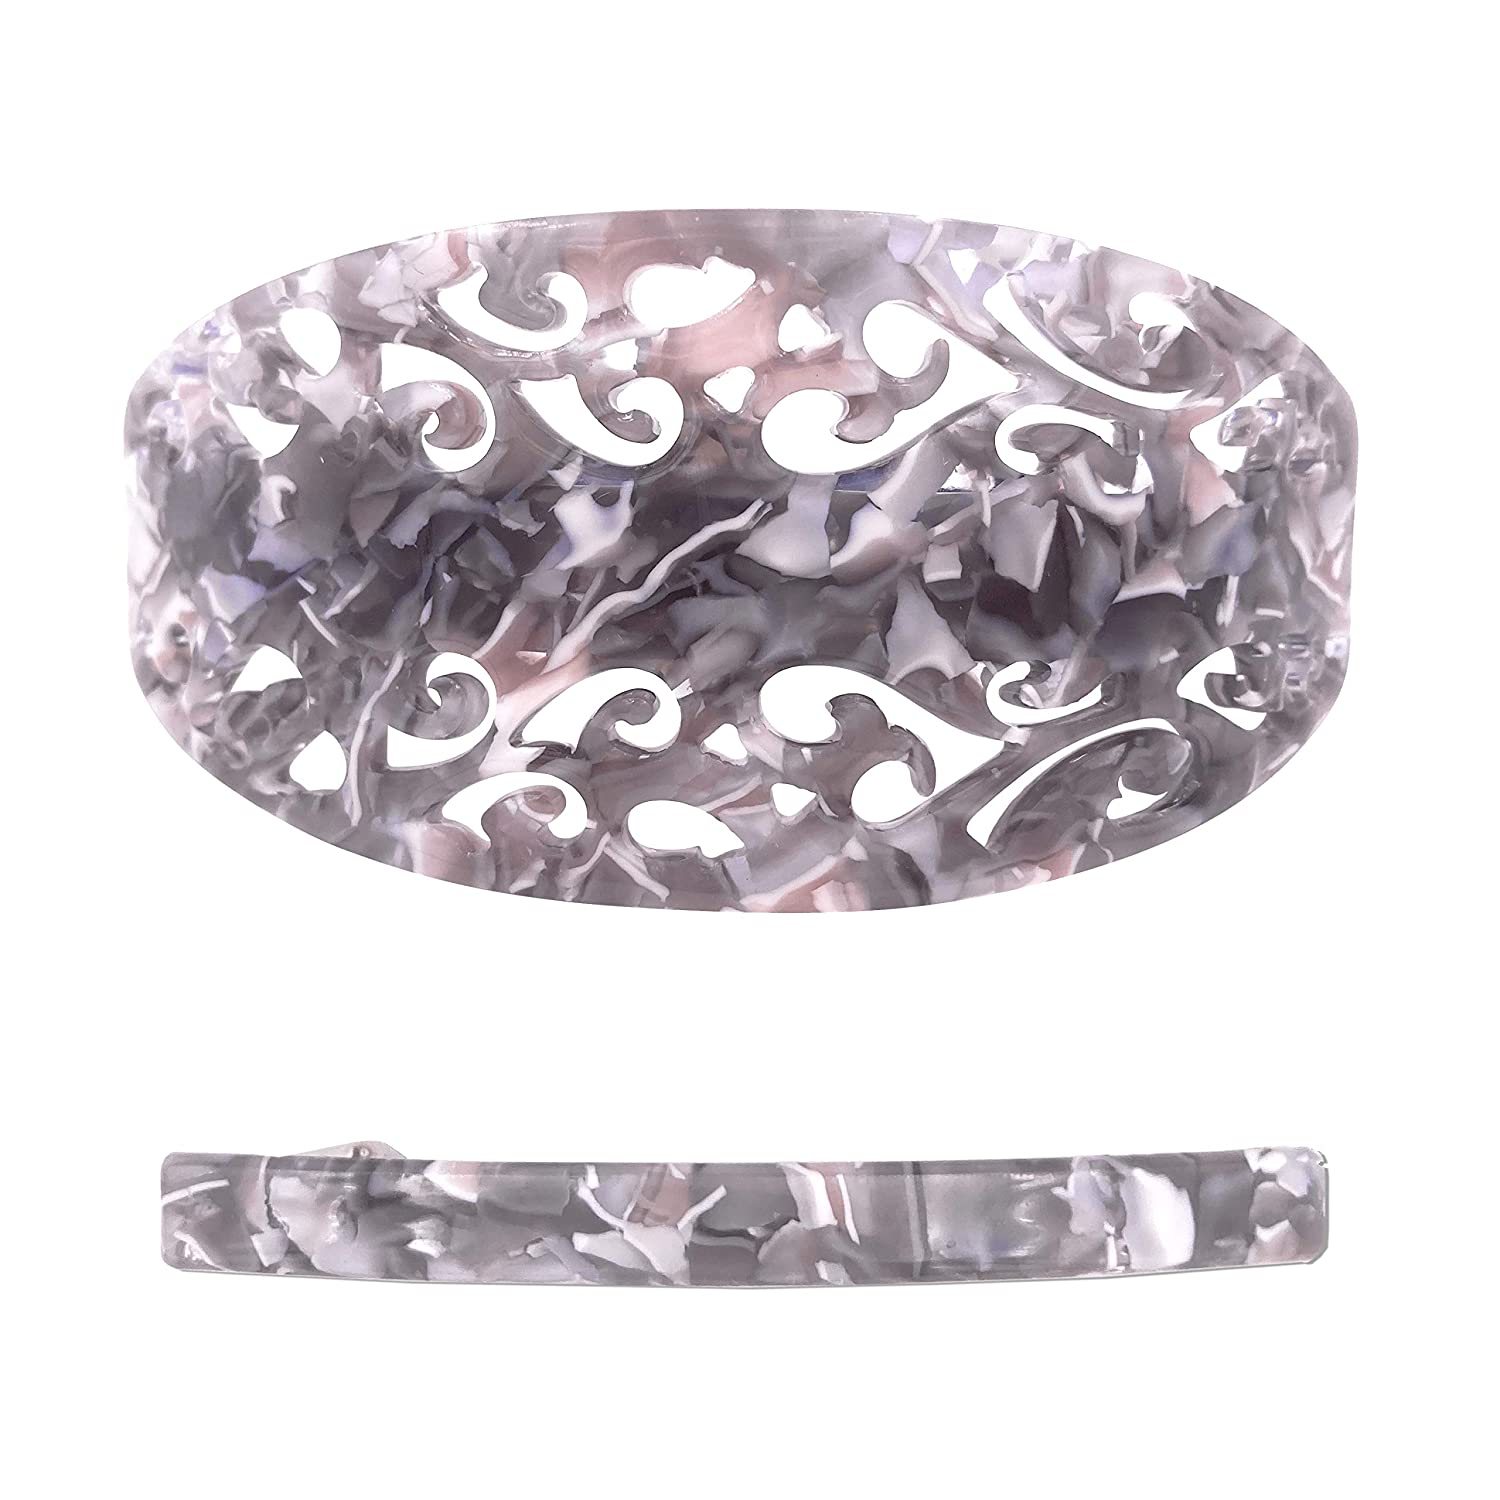 Strong Large Hair Barrette Set For Thick Hair Grey Marble Filigree for Women : Beauty